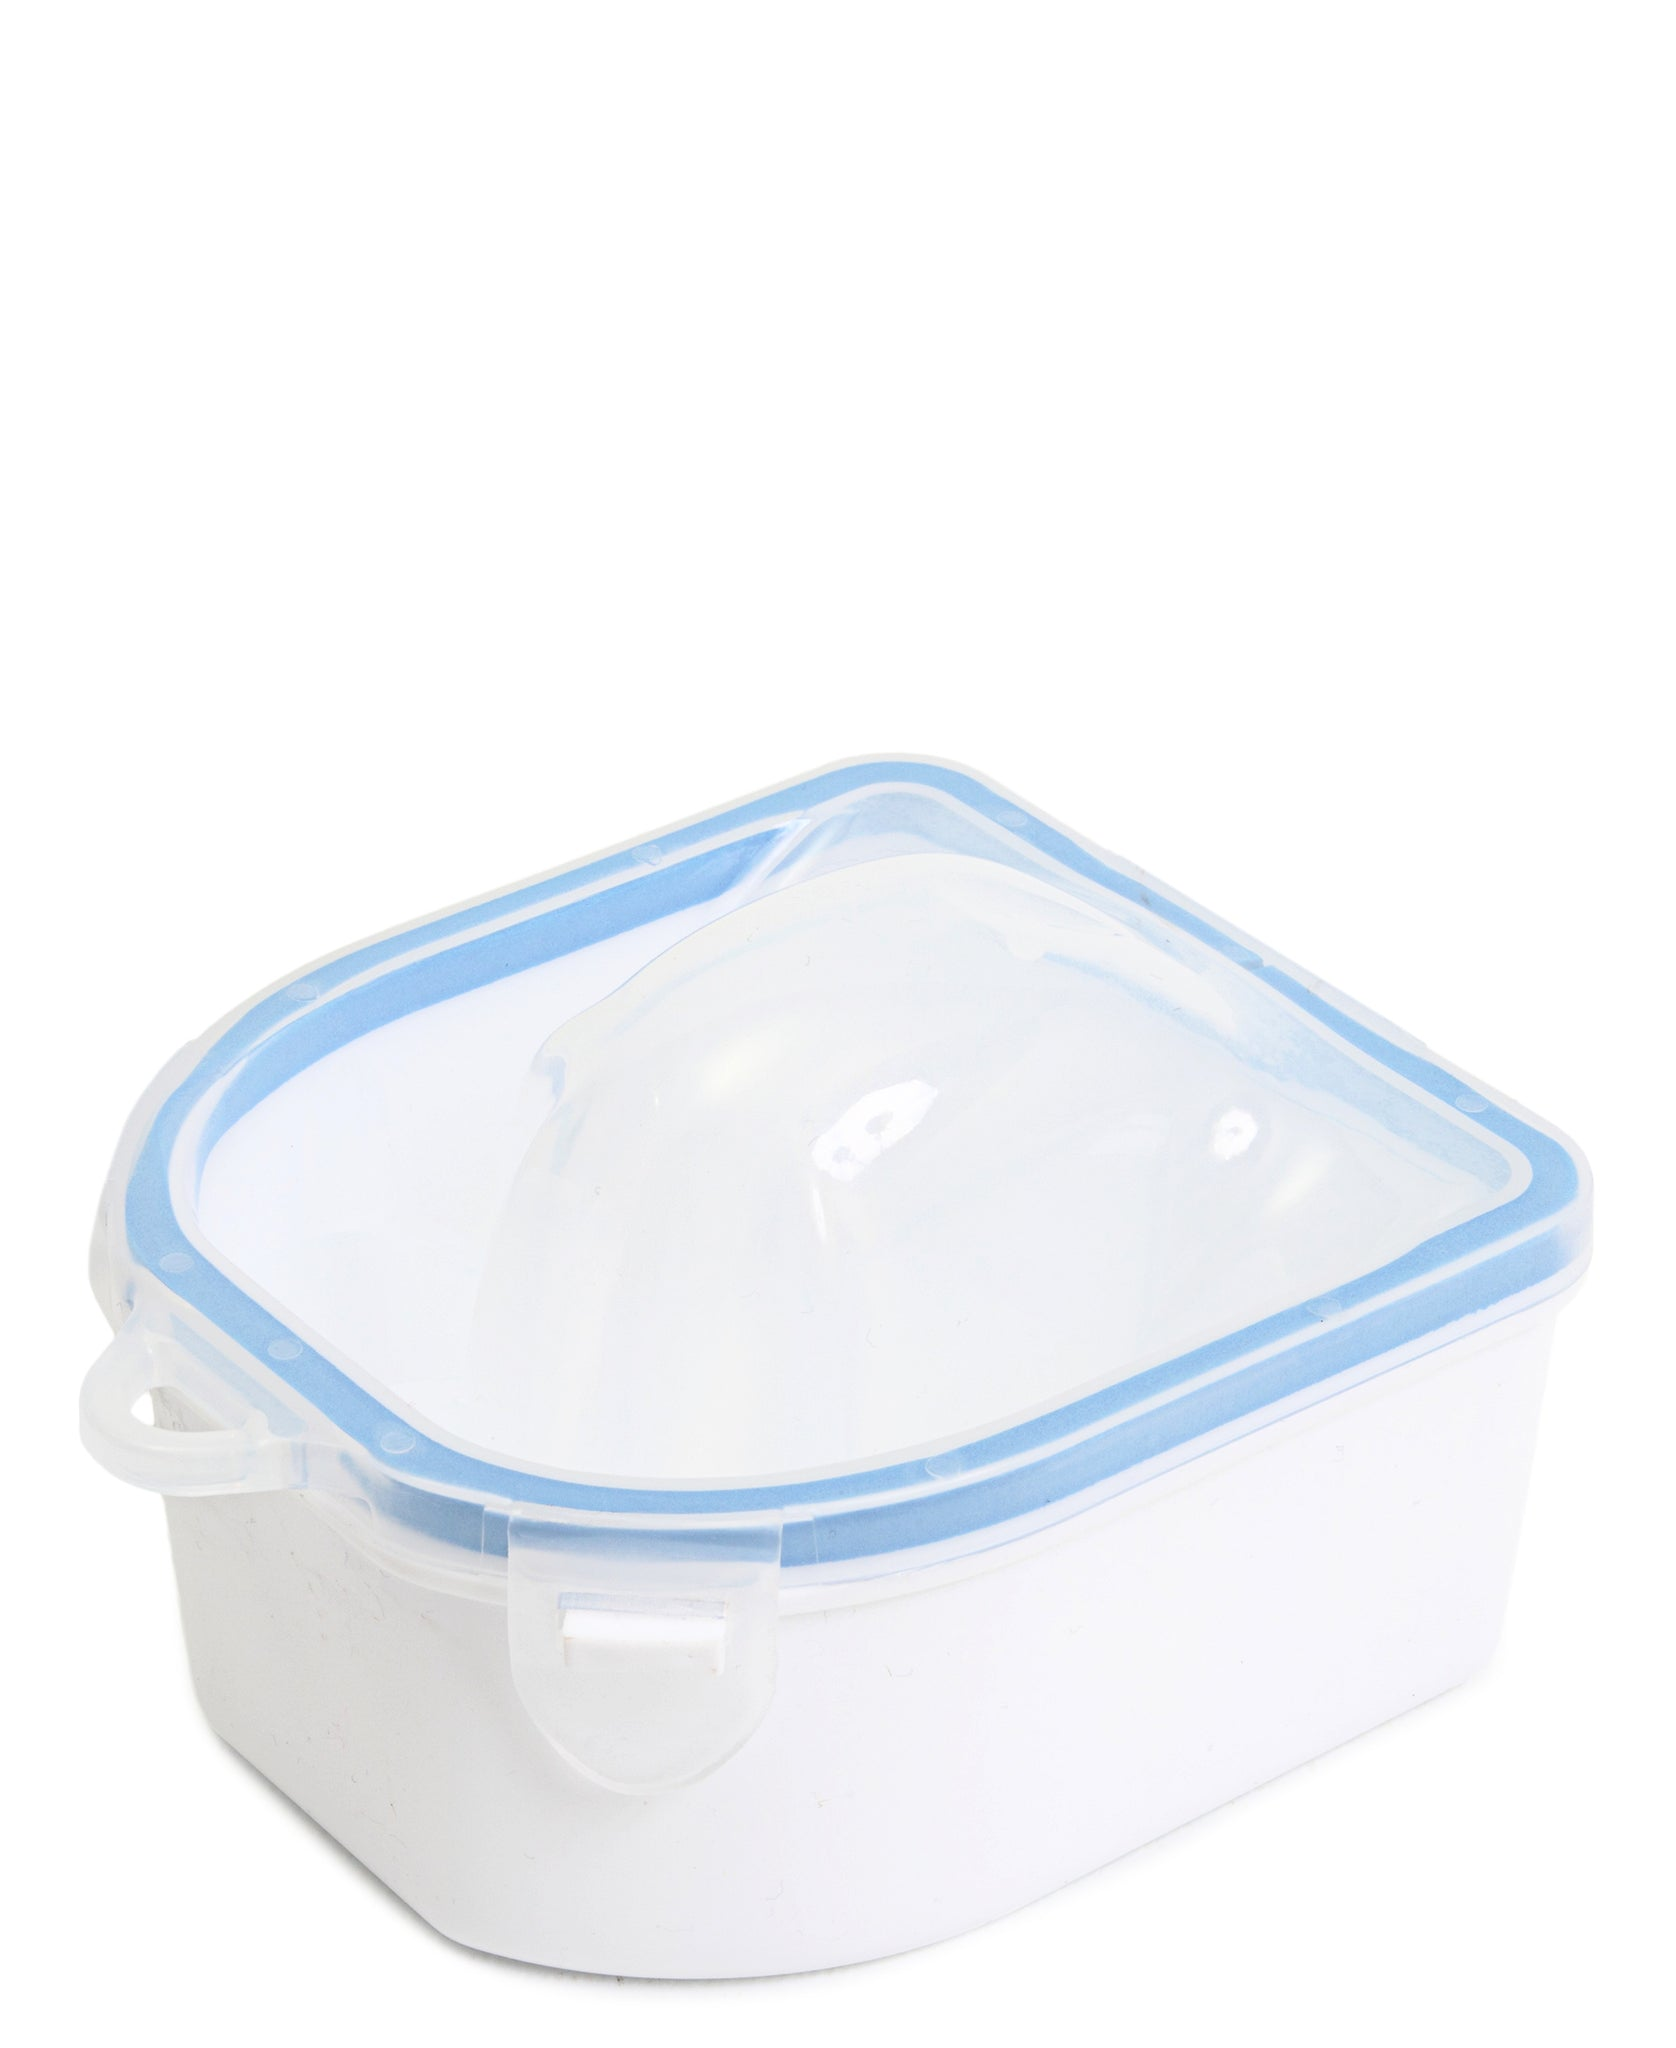 5 Fingers Nail Soaking Bowl - Blue